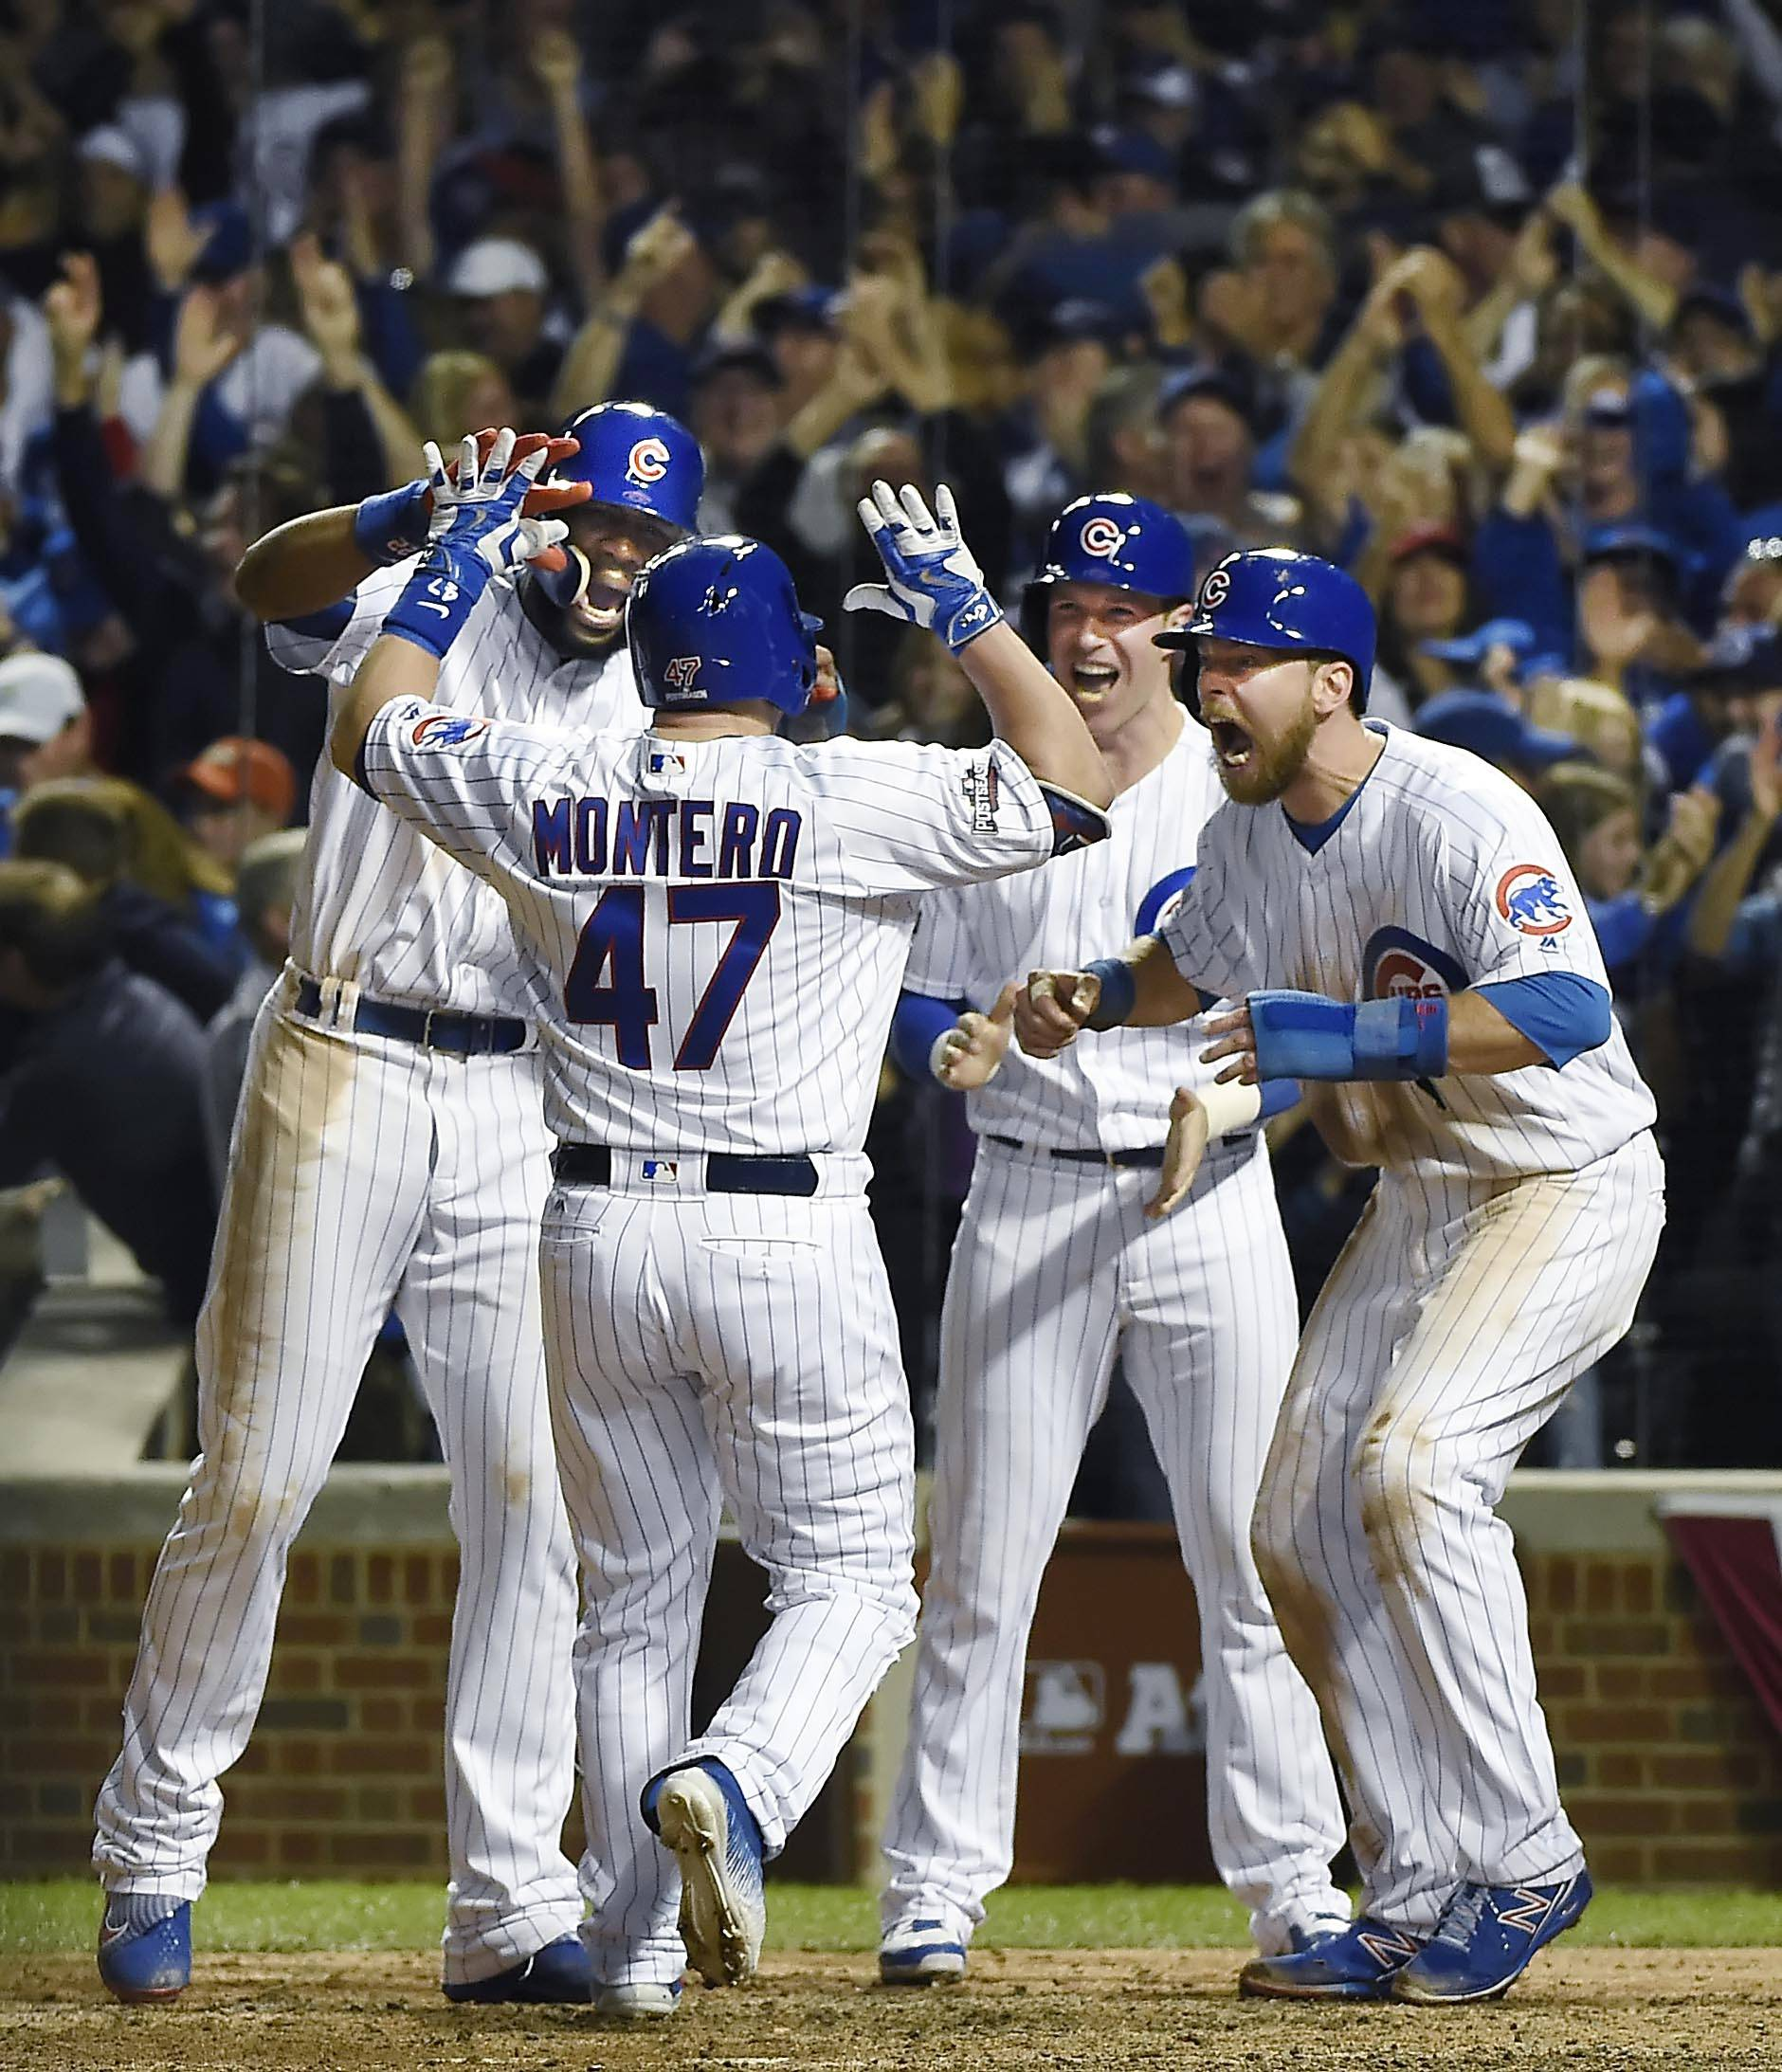 Cubs pinch-hitter Miguel Montero is met at home plate by teammates Jason Heyward, Chris Coghlan and Ben Zobrist after his grand slam in the bottom of the eighth inning Saturday against the Los Angeles Dodgers in Game 1 of the National League championship series at Wrigley Field.